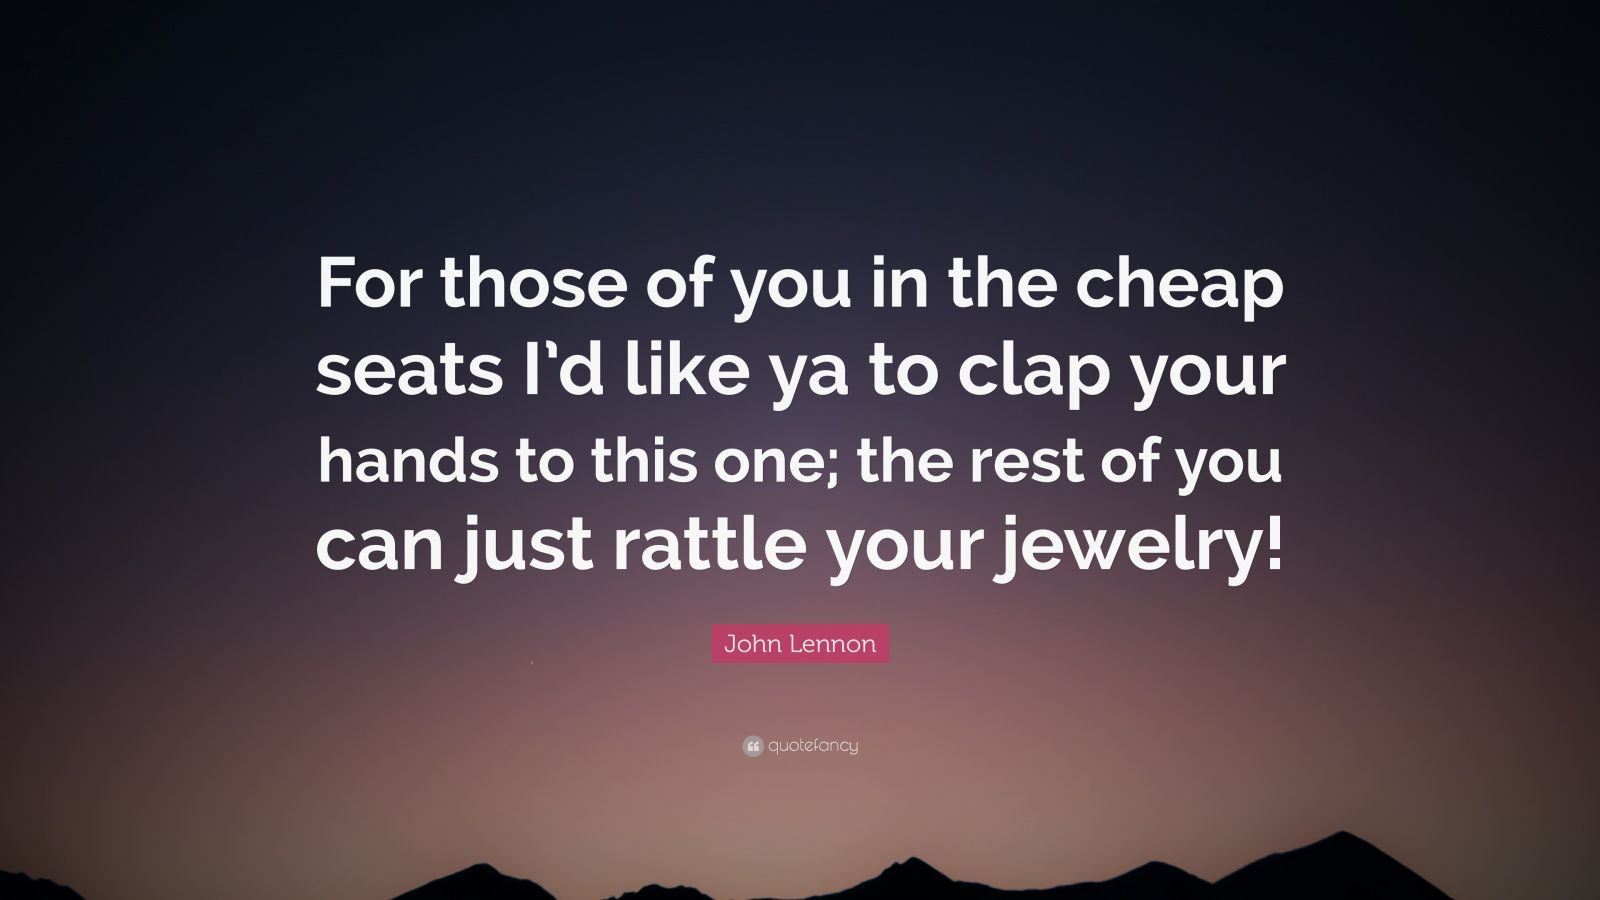 """John Lennon Quote: """"For those of you in the cheap seats I'd like ya to clap your hands to this one; the rest of you can just rattle your jewelry!"""""""